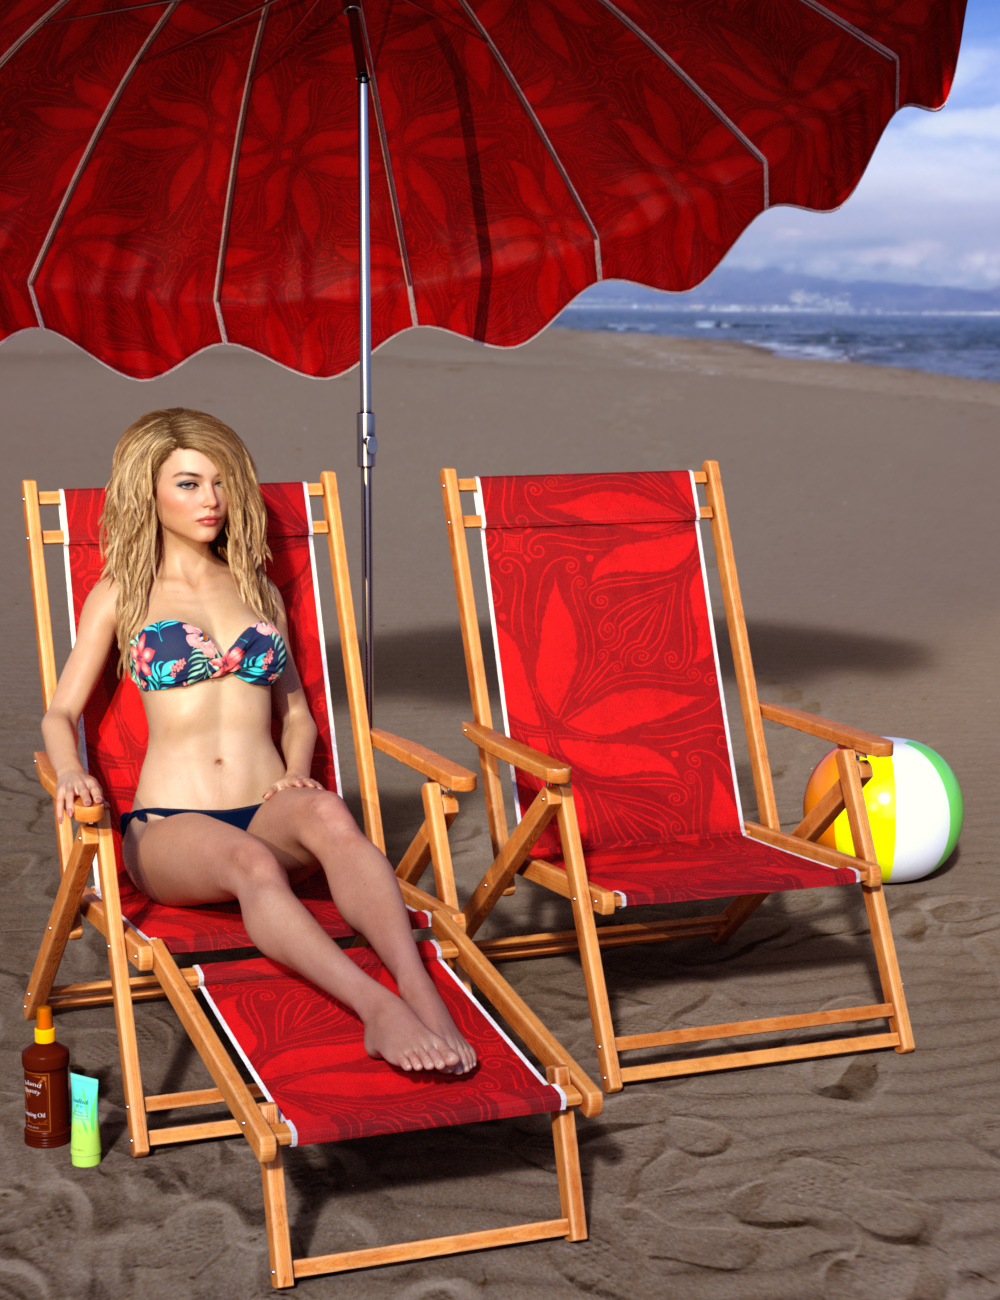 Beach Party Props by: ARTCollaborations, 3D Models by Daz 3D